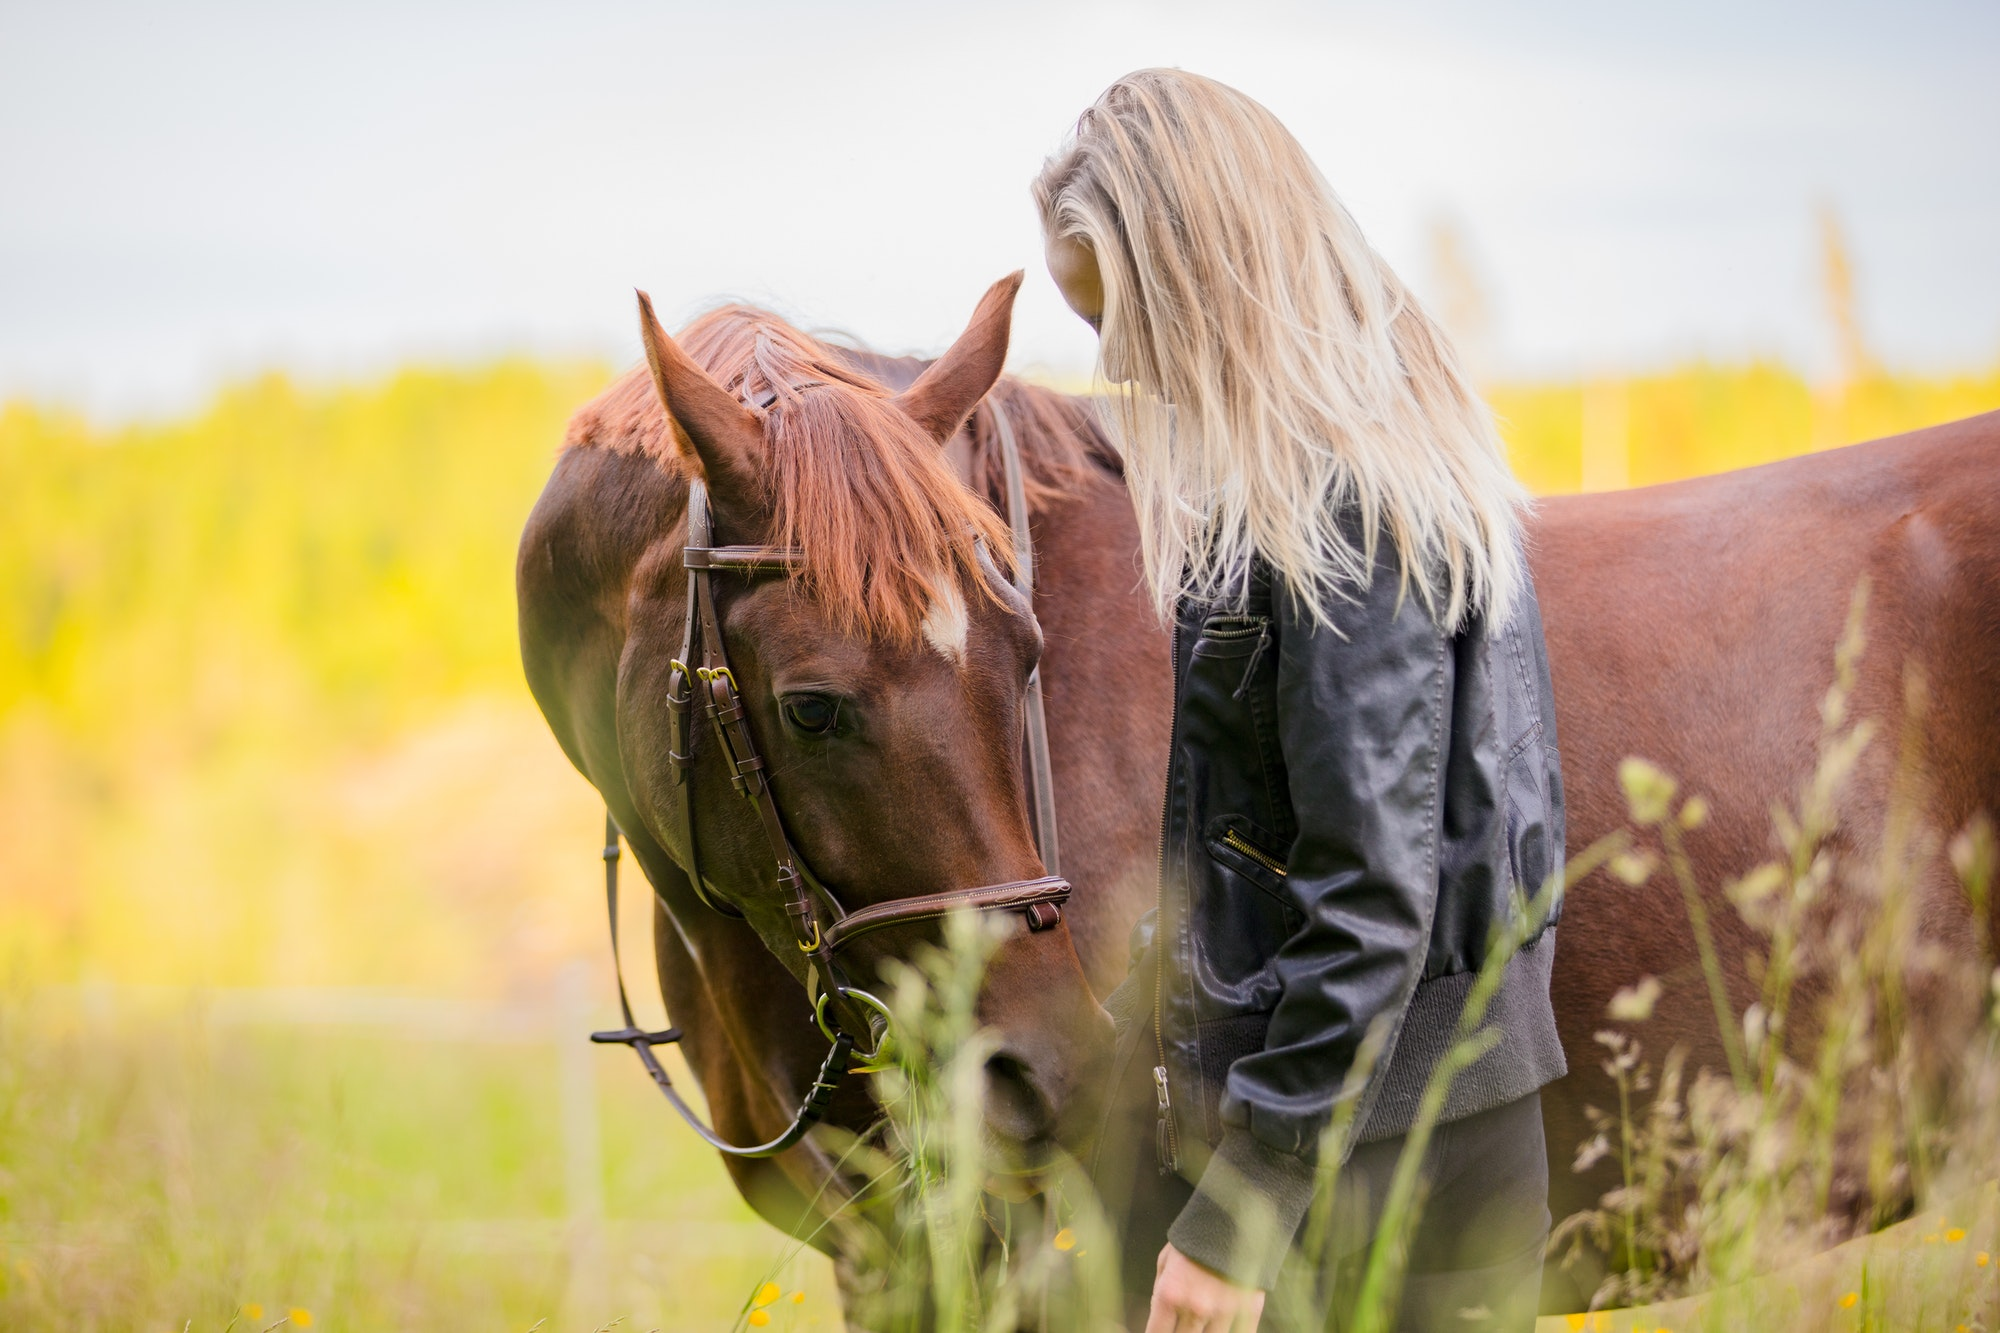 Woman communicate with her beautilful arabian horse friend in the field